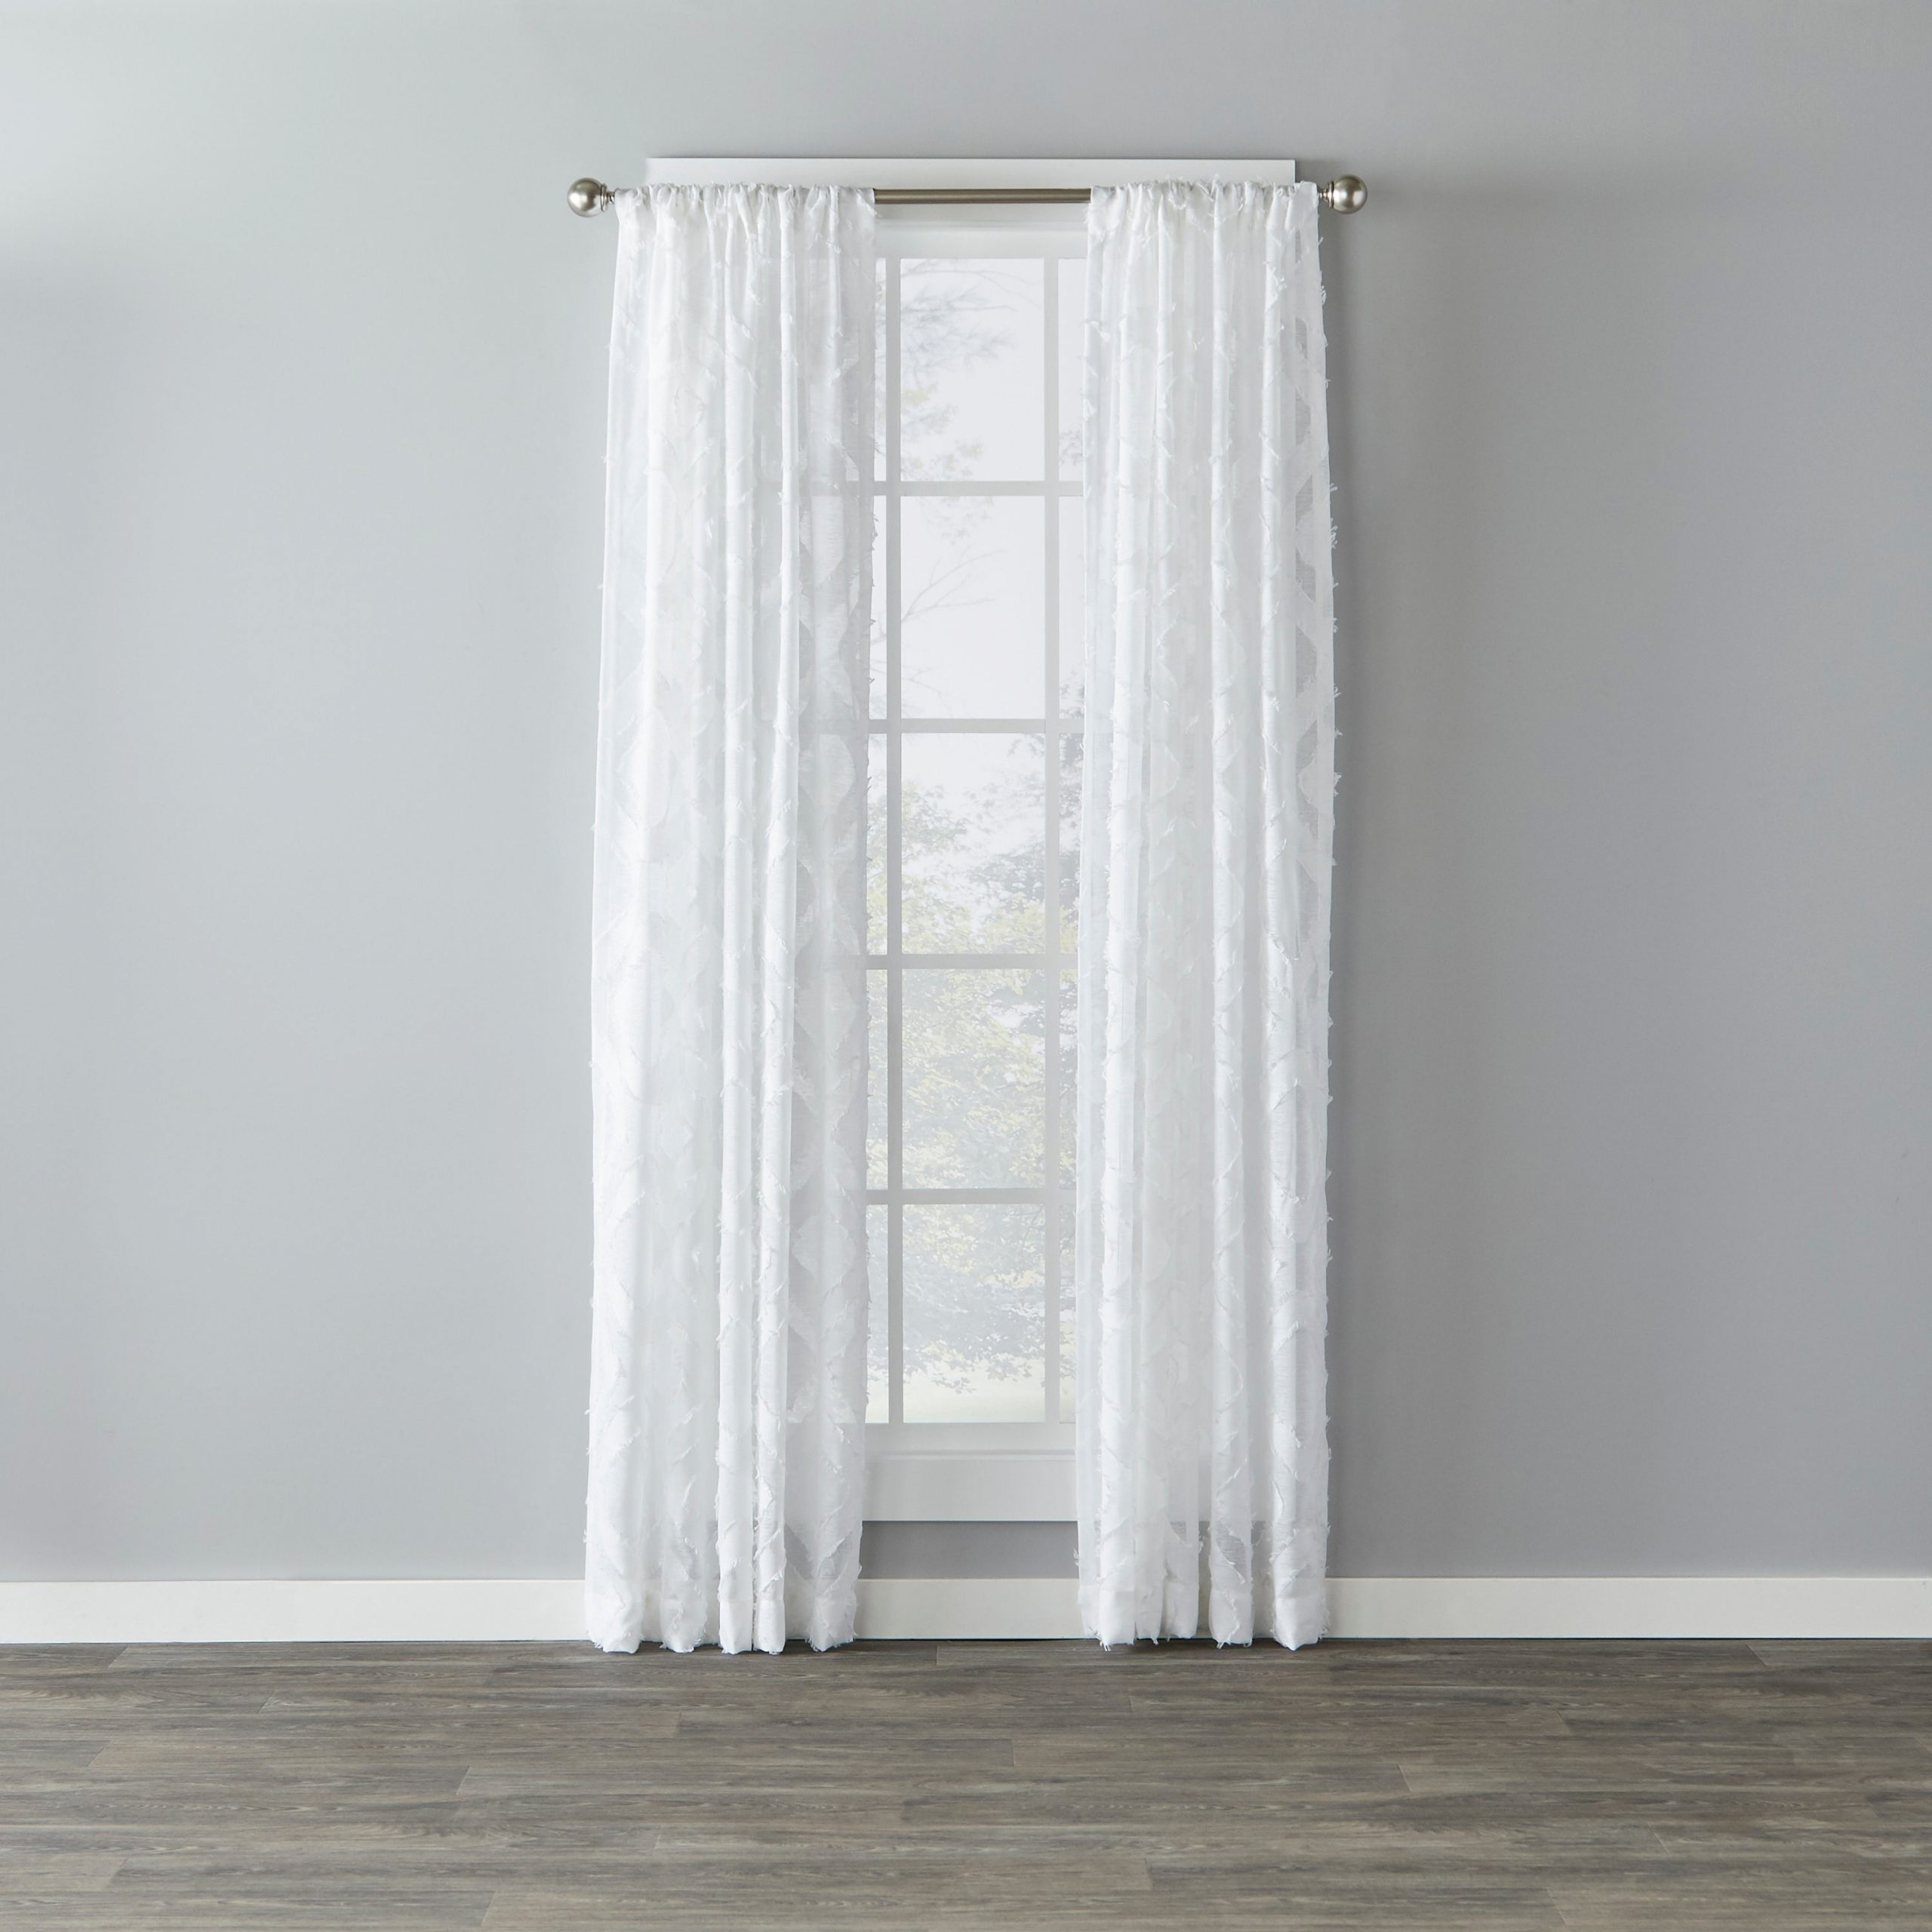 Details About Porch & Den Northgate Skl Home Edge 63-Inch Panel White intended for Porch & Den Park Point Blush 24-Inch Tier Pairs (Image 9 of 20)